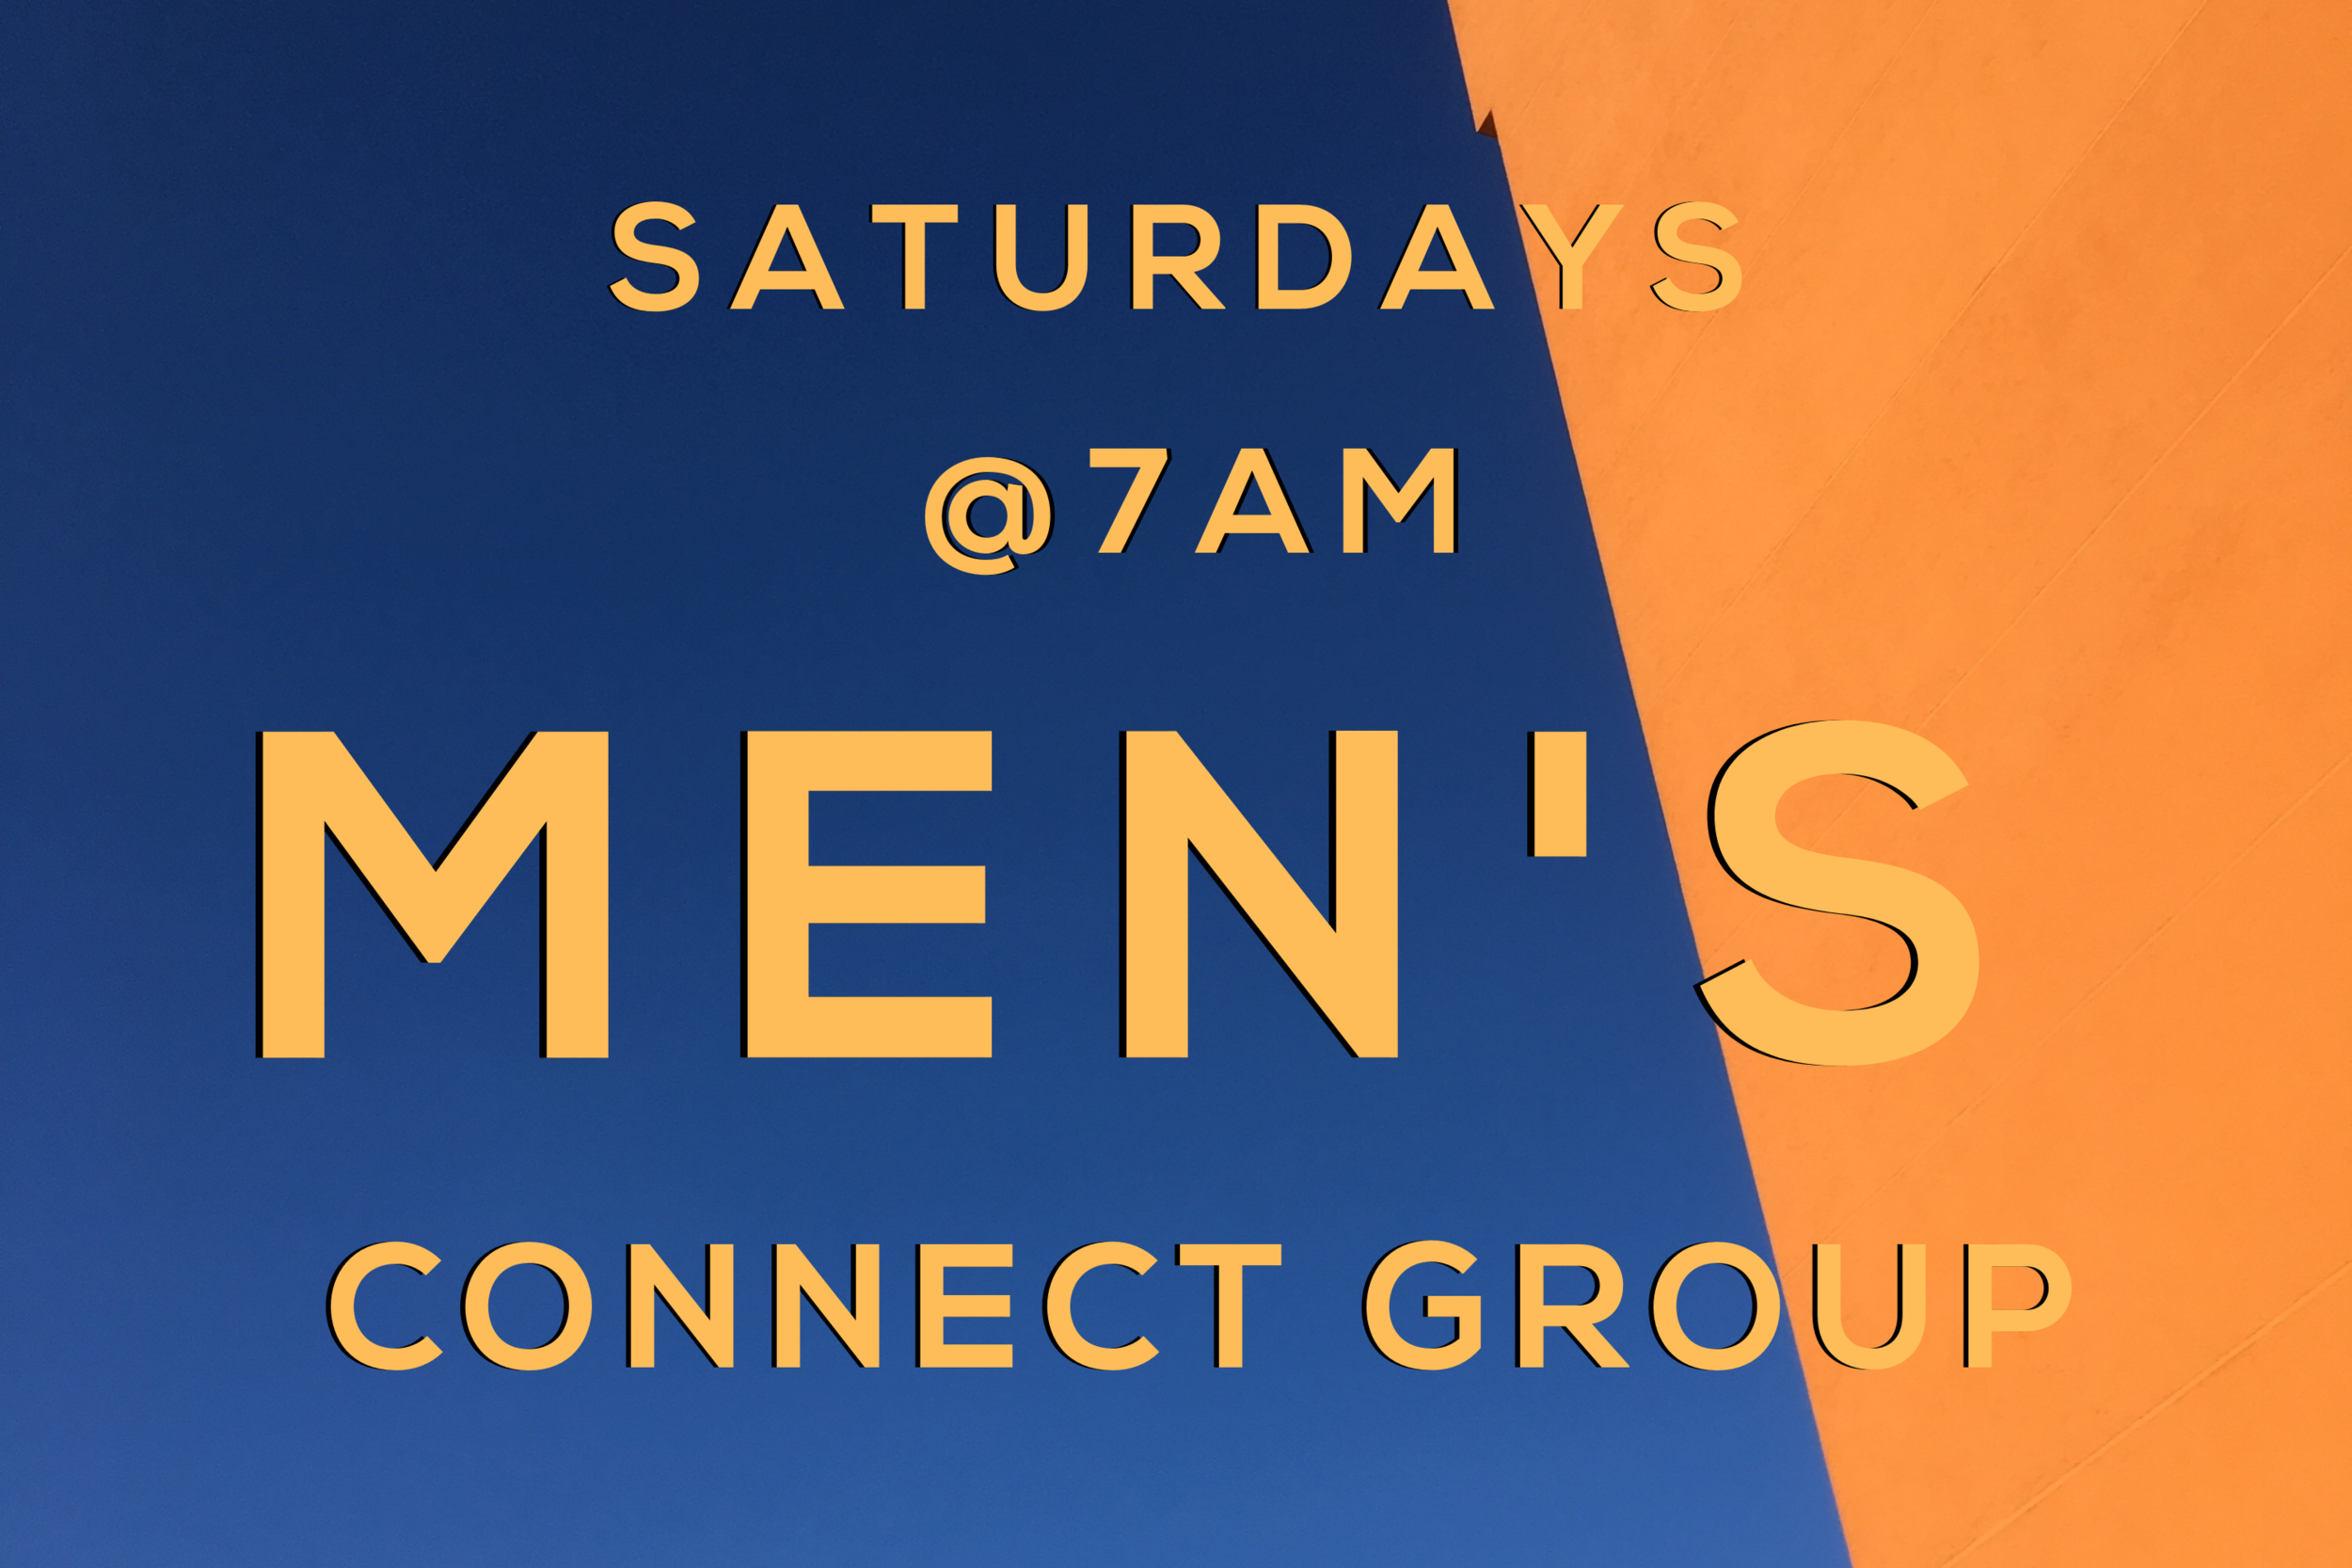 Men's Gathering 2nd & 4th Saturday